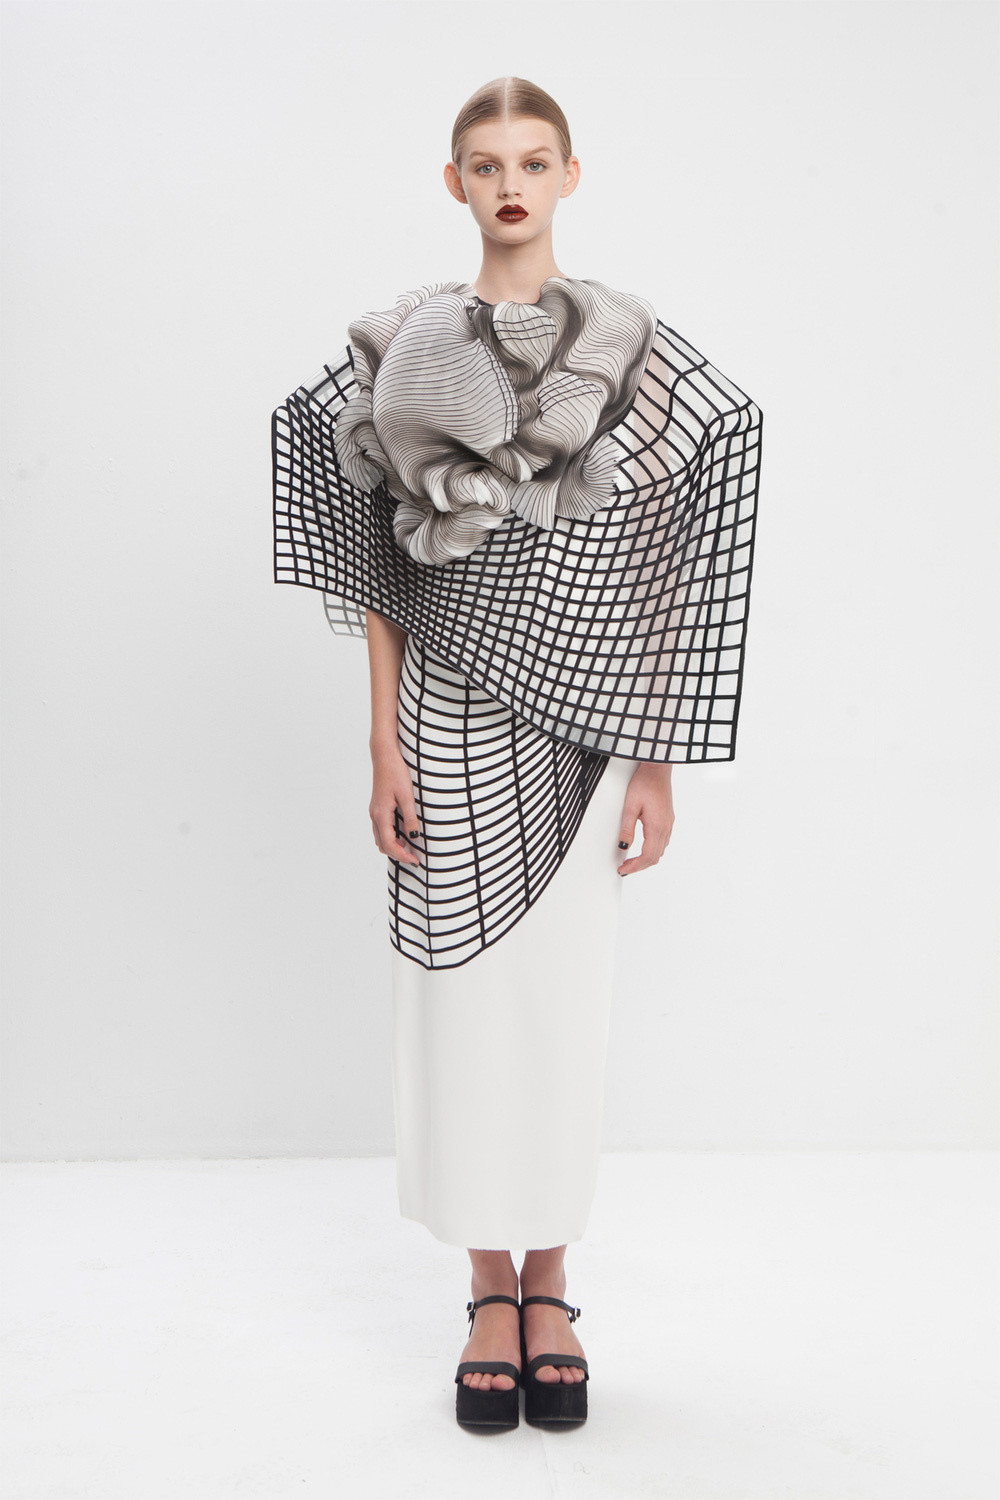 hard-copy-collection-by-noa-raviv-yellowtrace-06